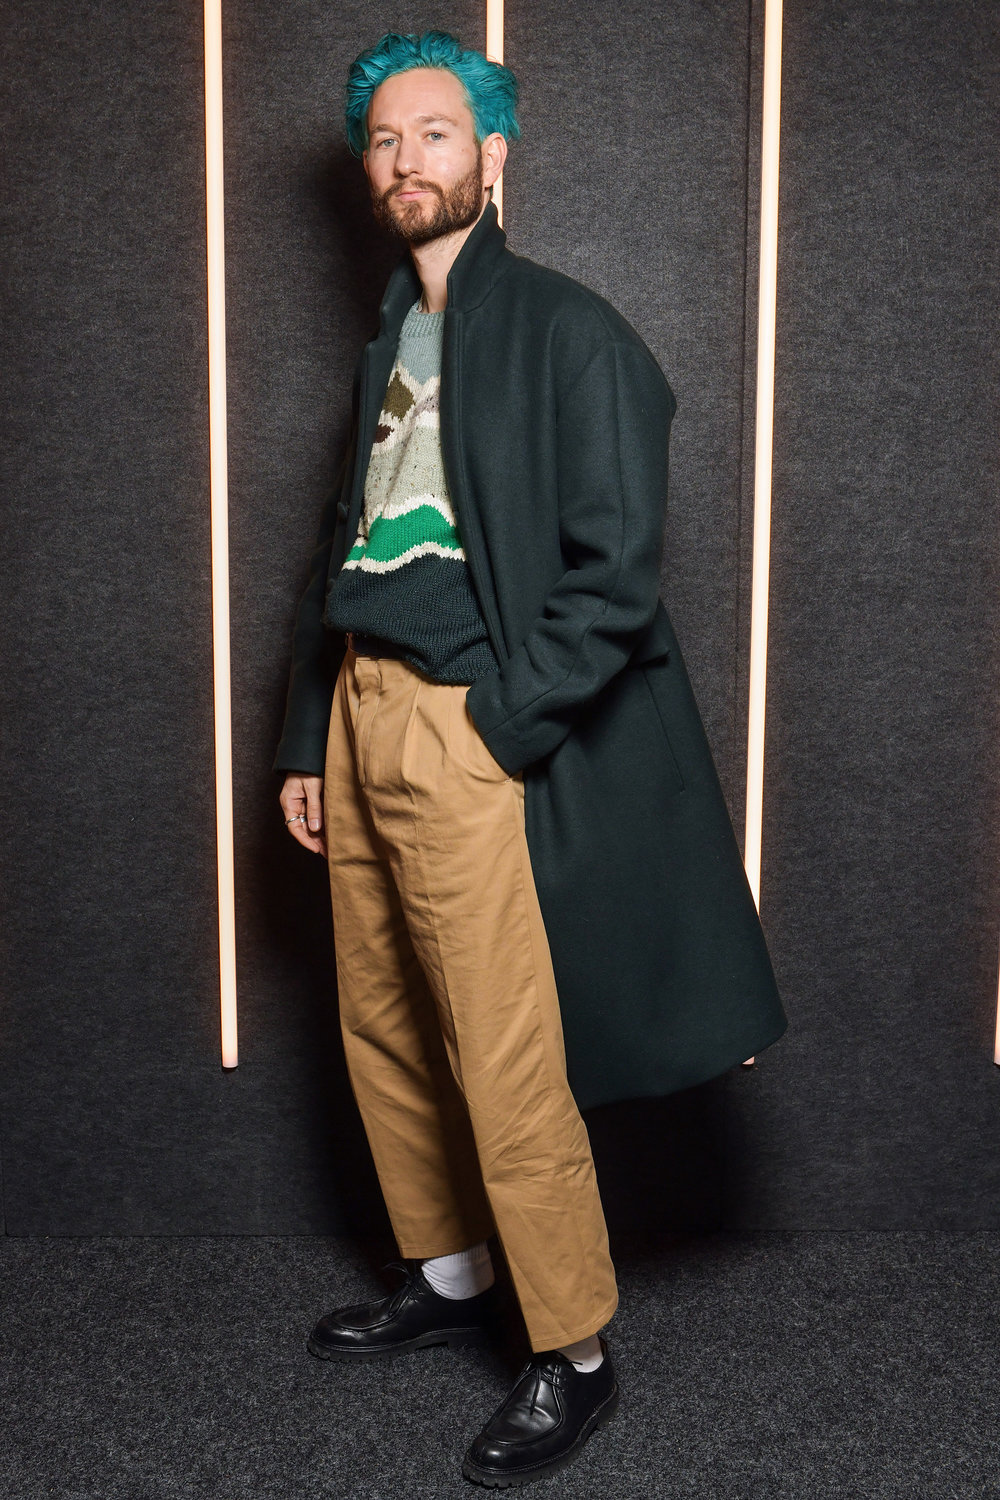 Isaac Hindin-Miller backstage at the BOSS Fall/Winter 2019 show at Basketball City during New York Fashion Week on Wednesday, February 13, in New York City. Photography, Courtesy of BOSS.